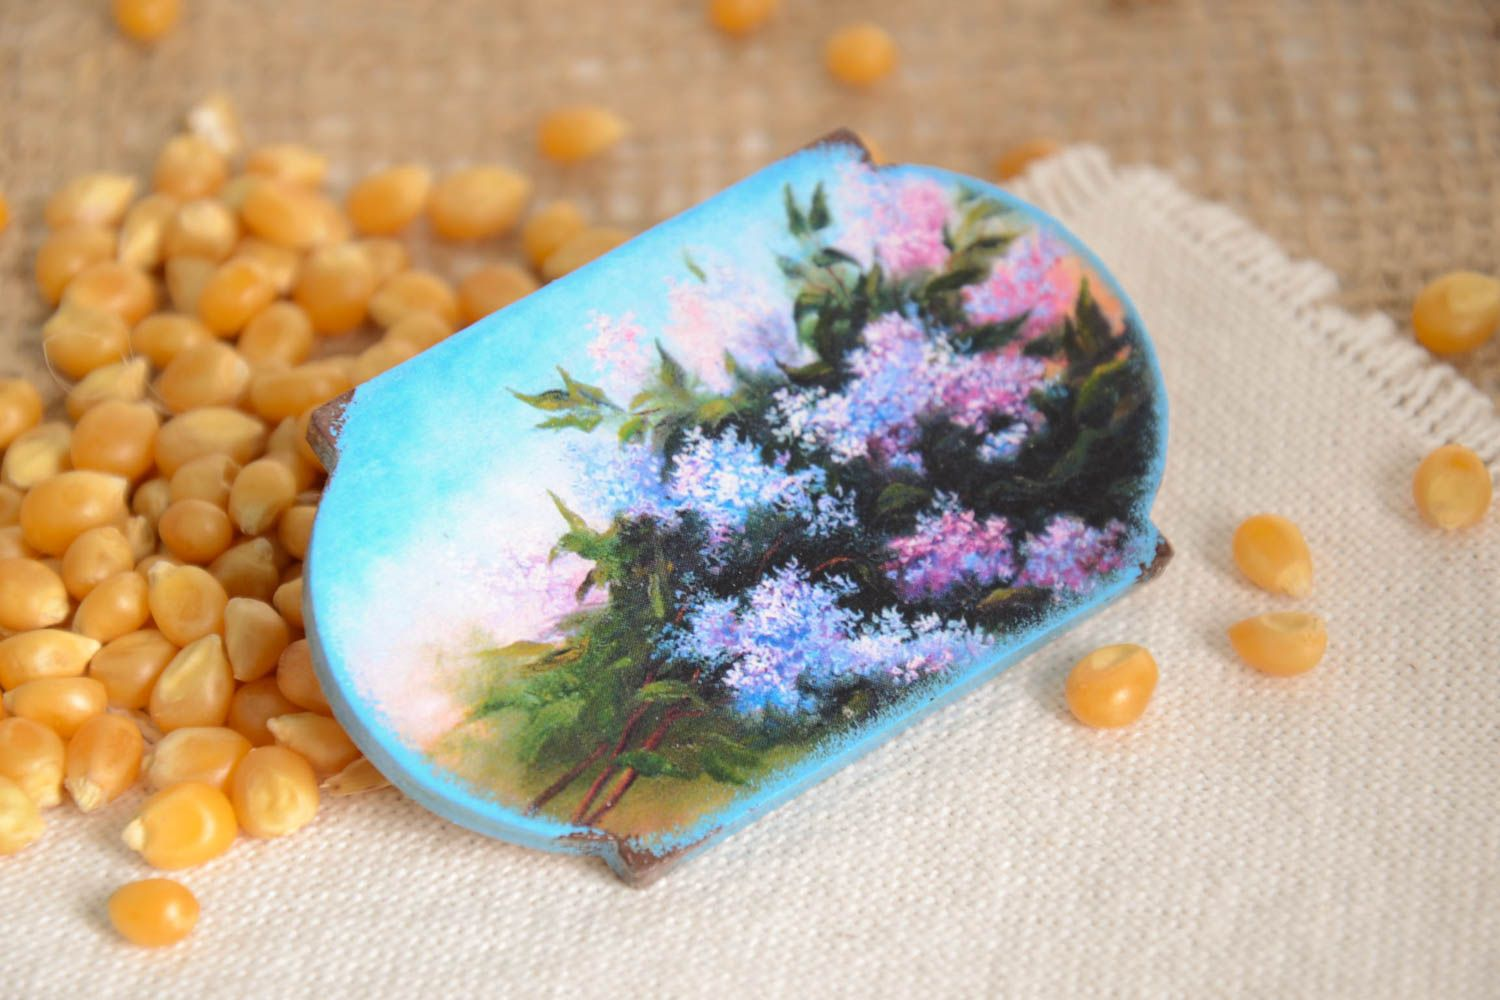 Unusual handmade fridge magnet kitchen supplies small gifts decorative use only photo 1